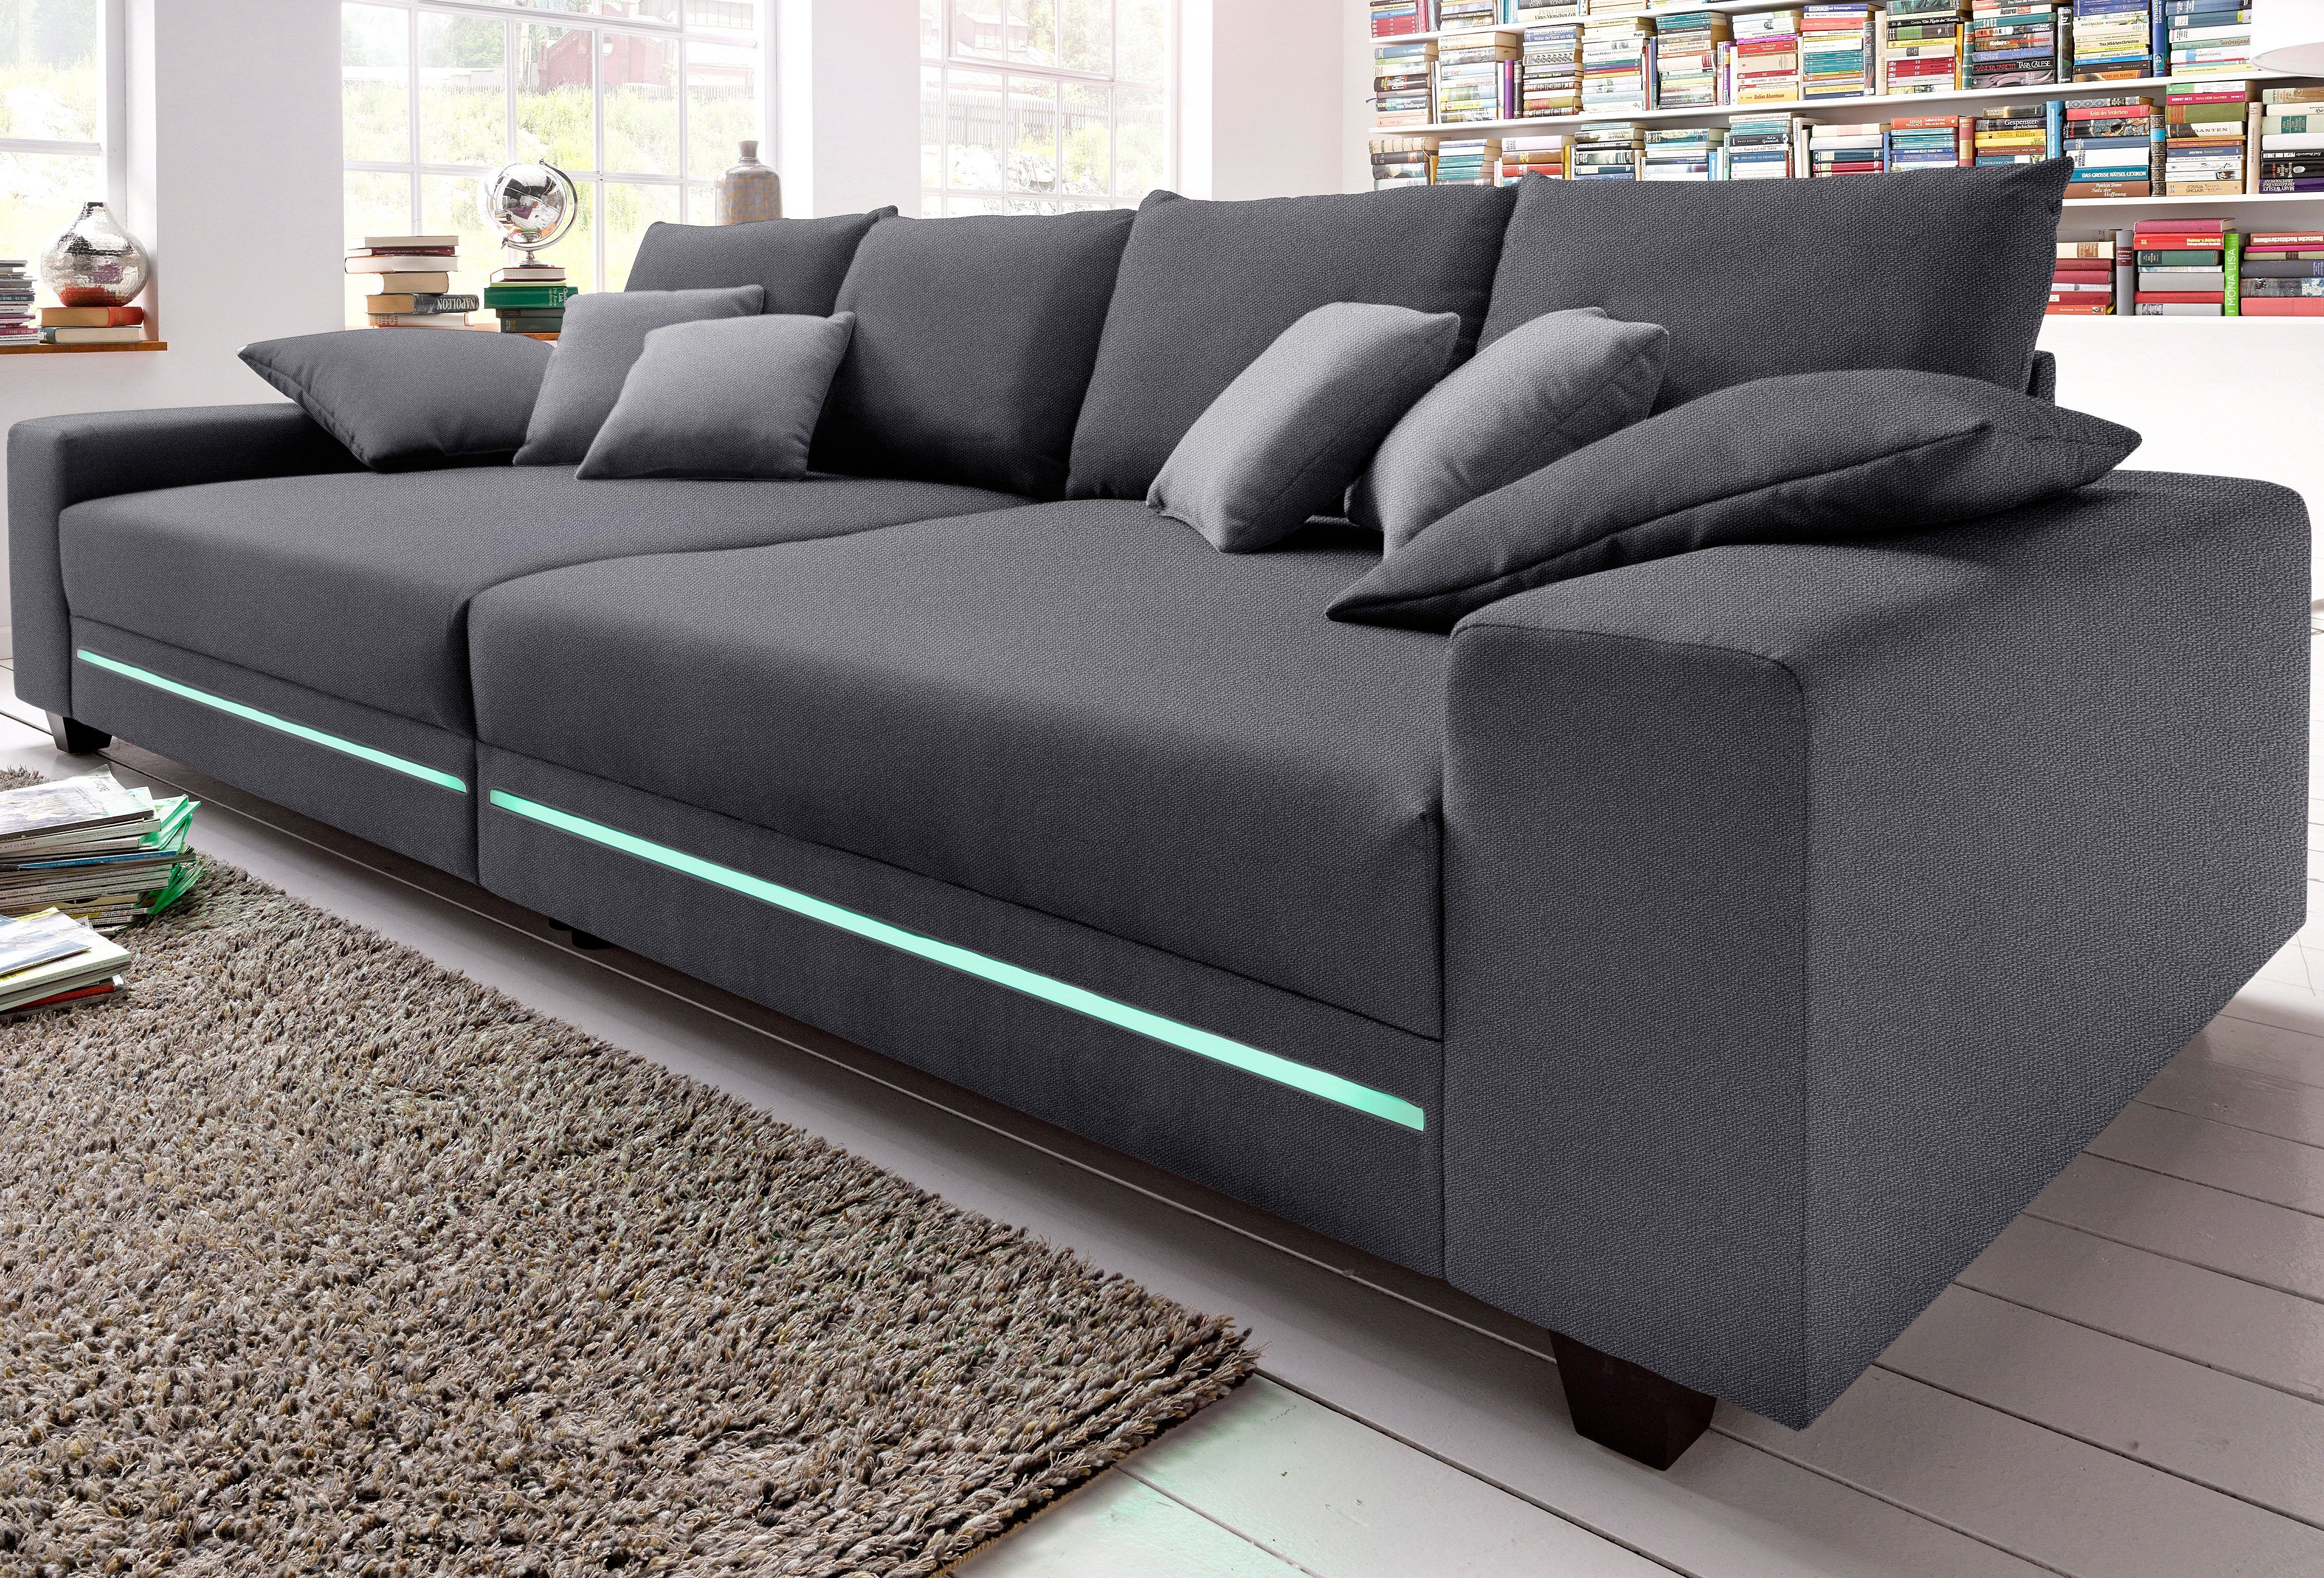 Big Sofa Trendmanufaktur Pin By Ladendirekt On Sofas Couches Pinterest Sofa Couch